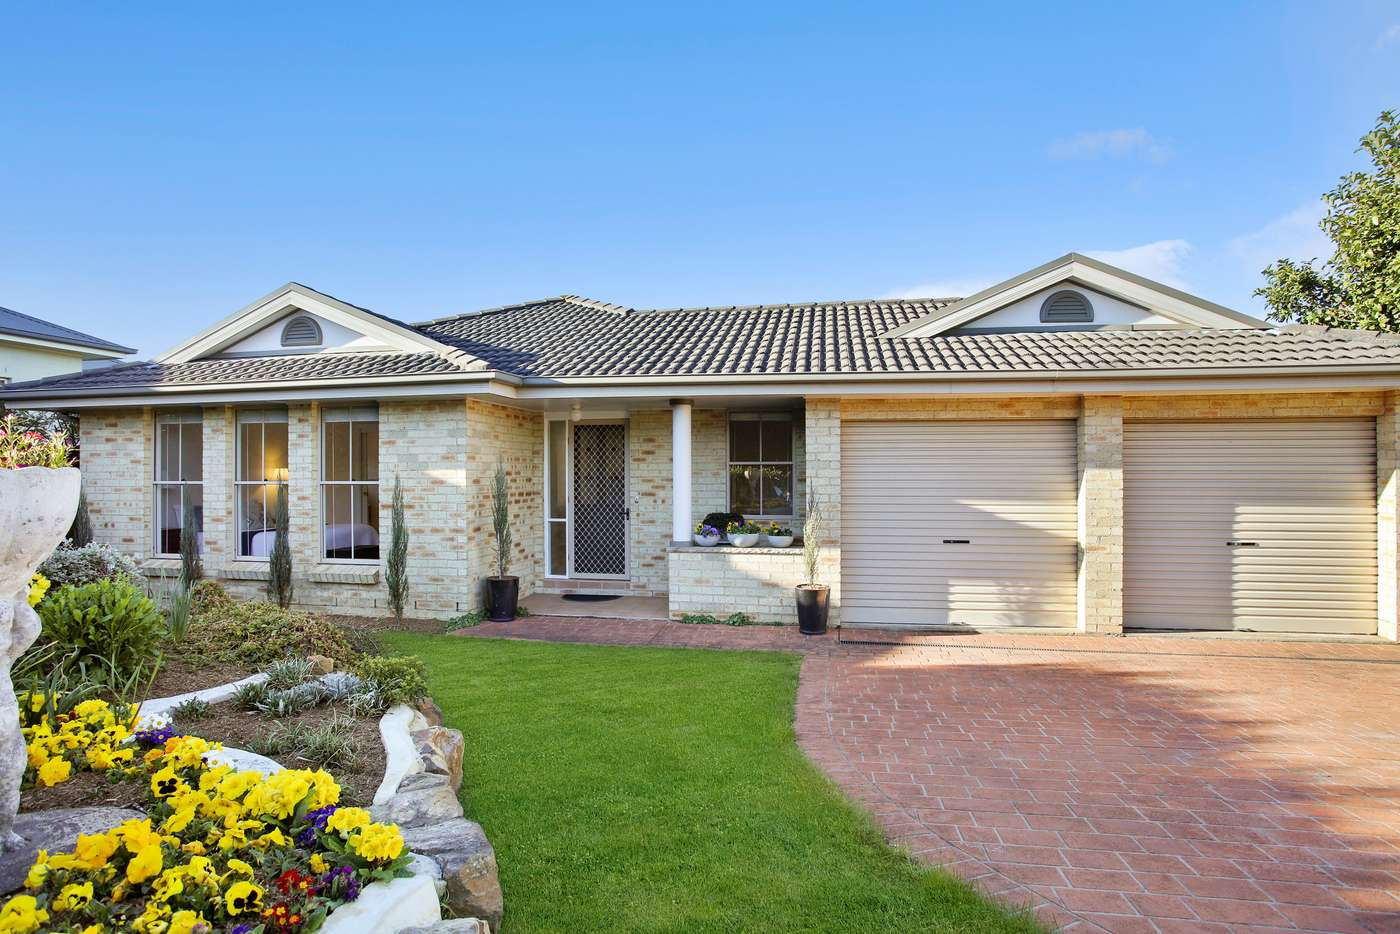 Main view of Homely house listing, 5 Dundee Place, Bowral NSW 2576